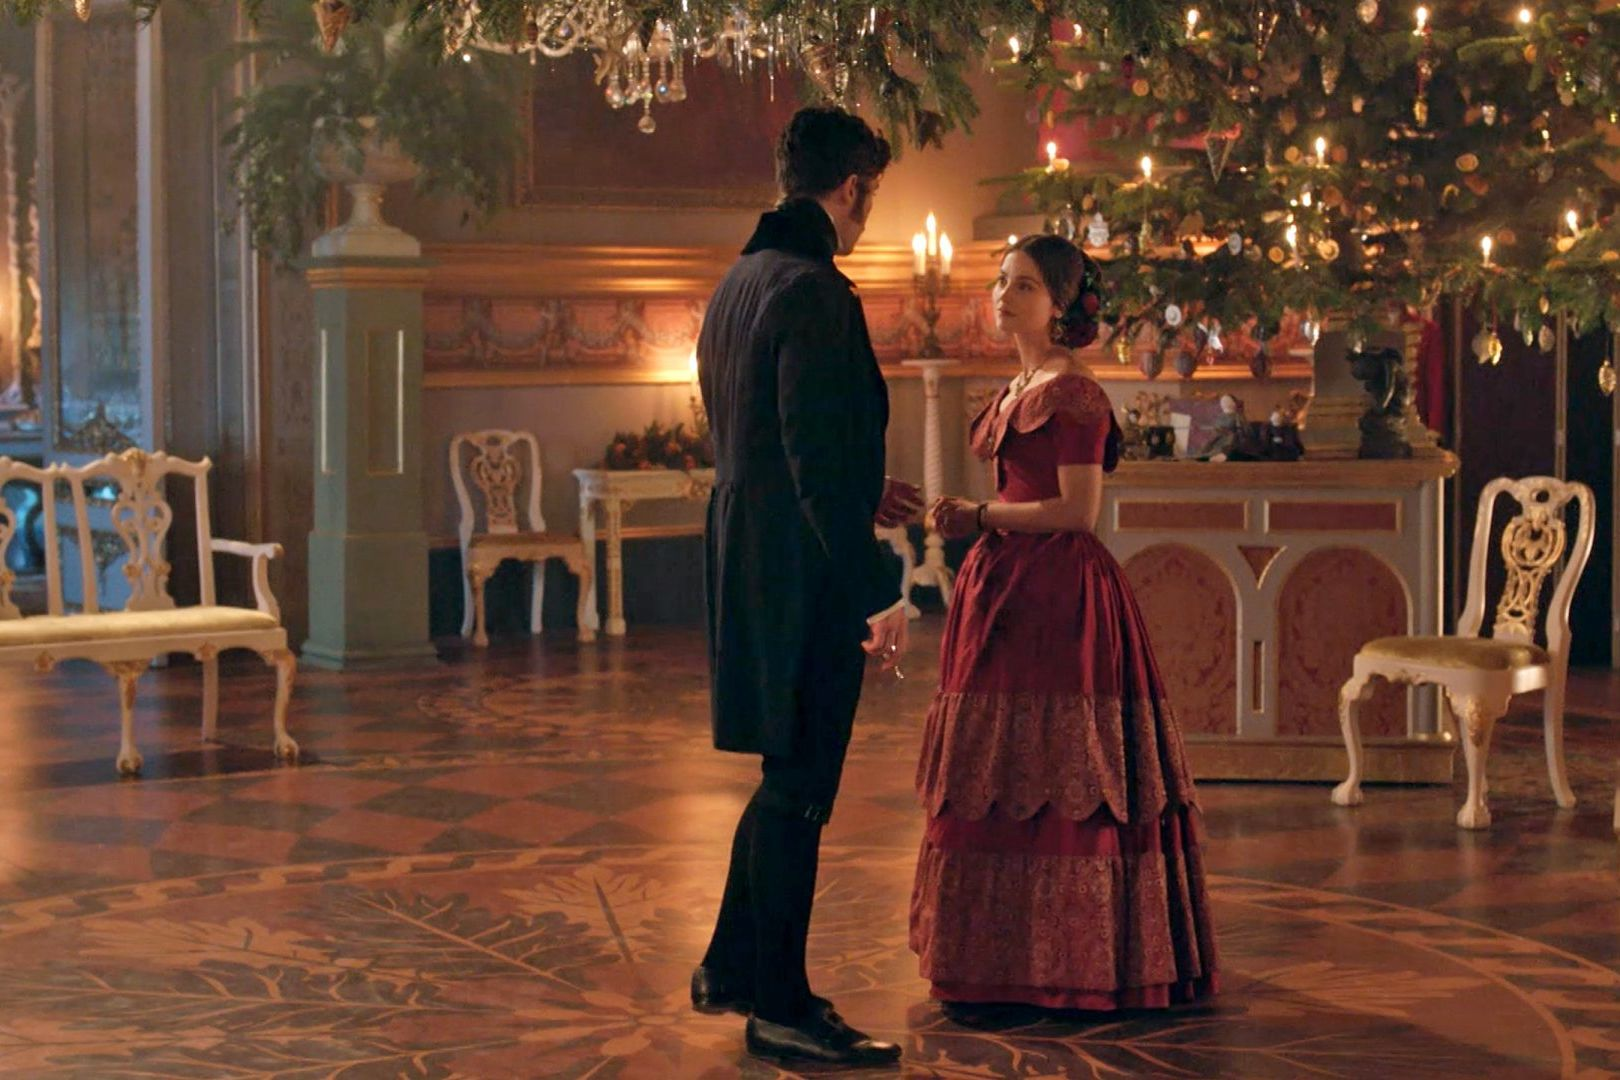 Watch a 'Victoria' Christmas Episode Encore on PBS in January